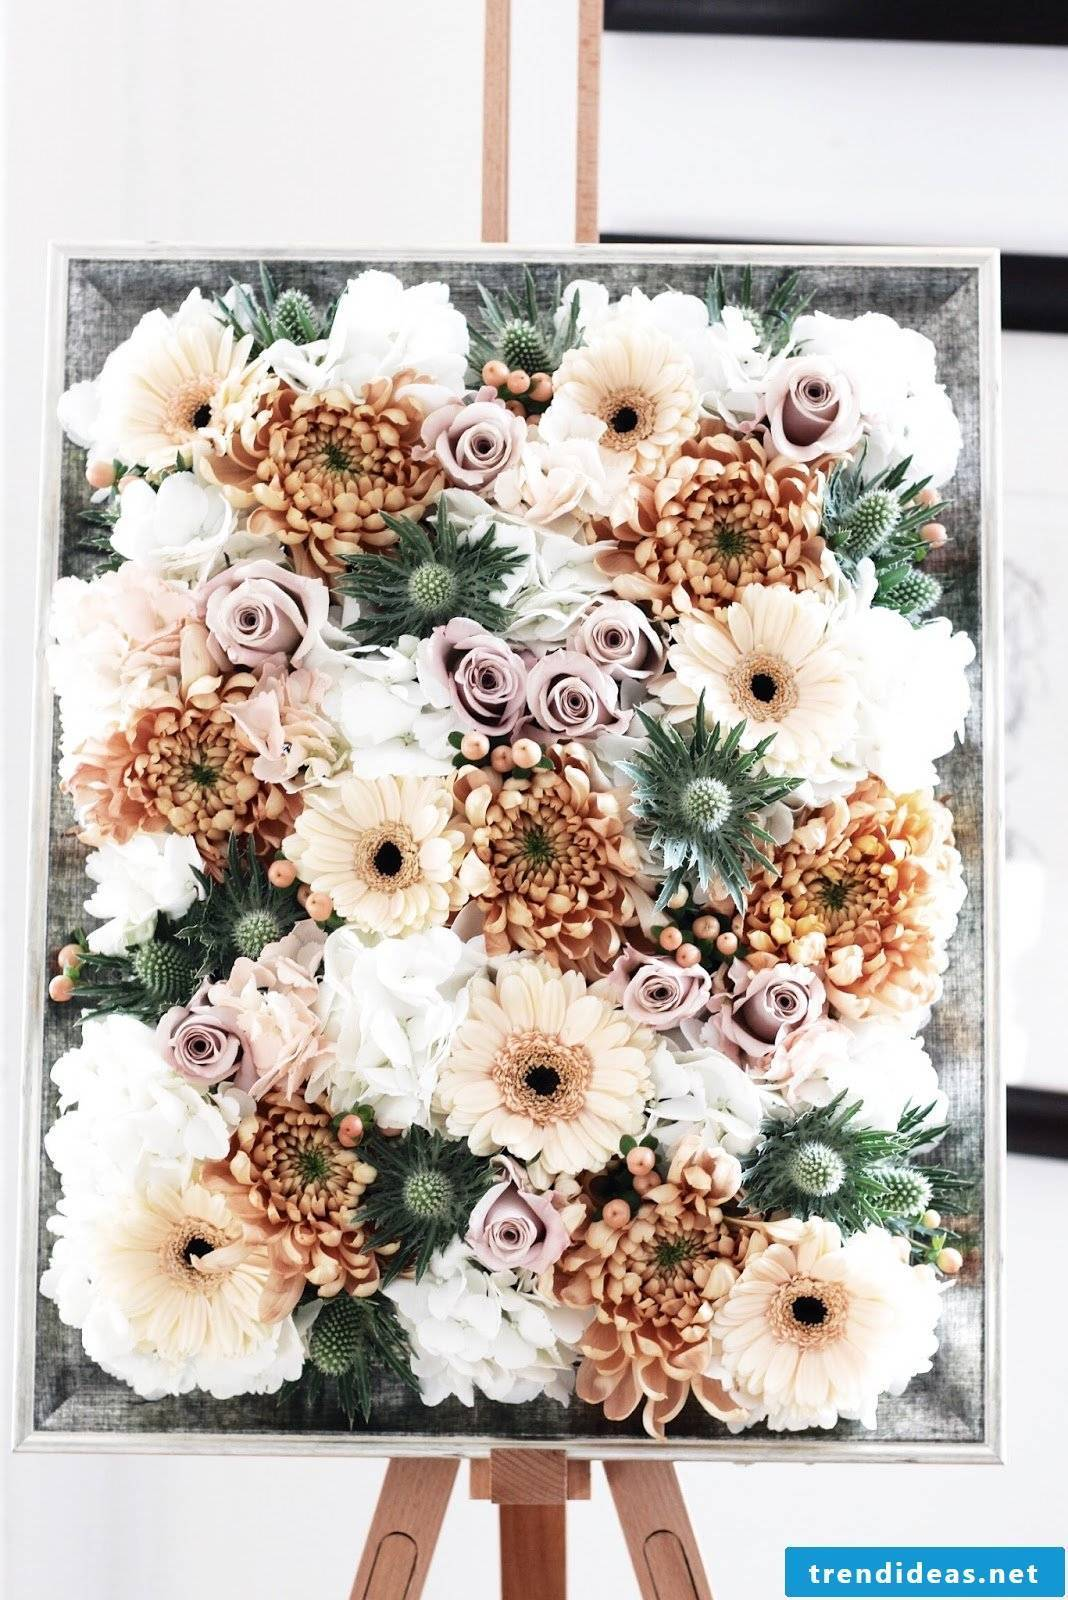 DIY idea for homemade picture frame with artificial flowers